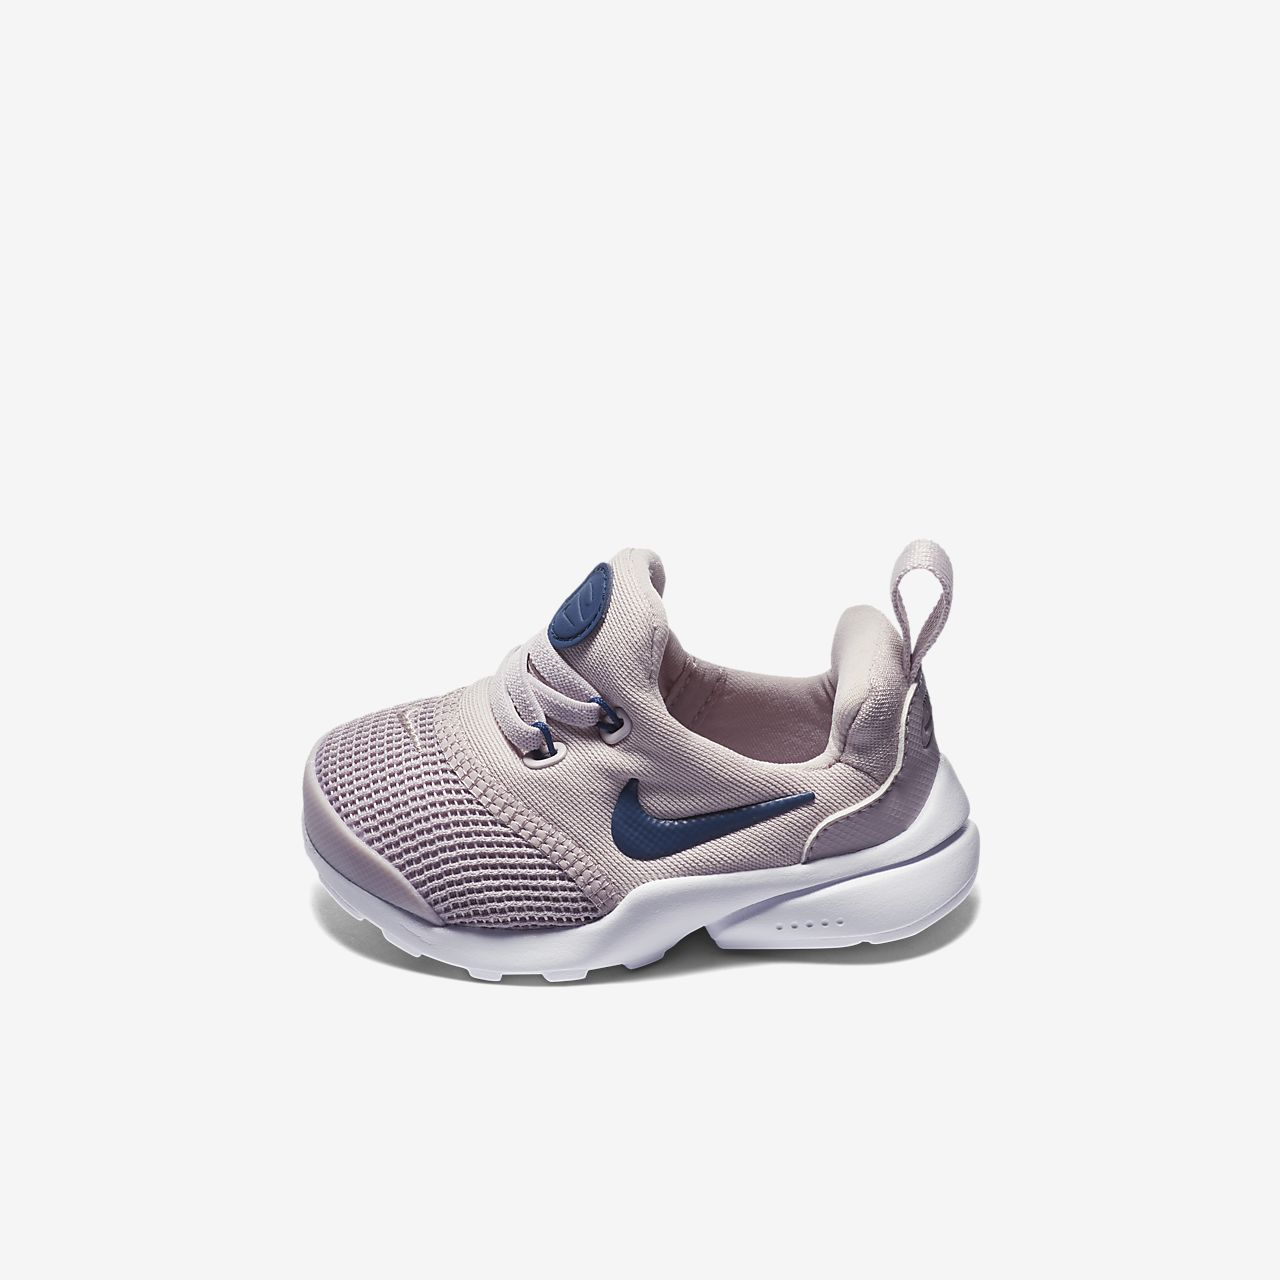 ... Nike Presto Fly Infant/Toddler Shoe